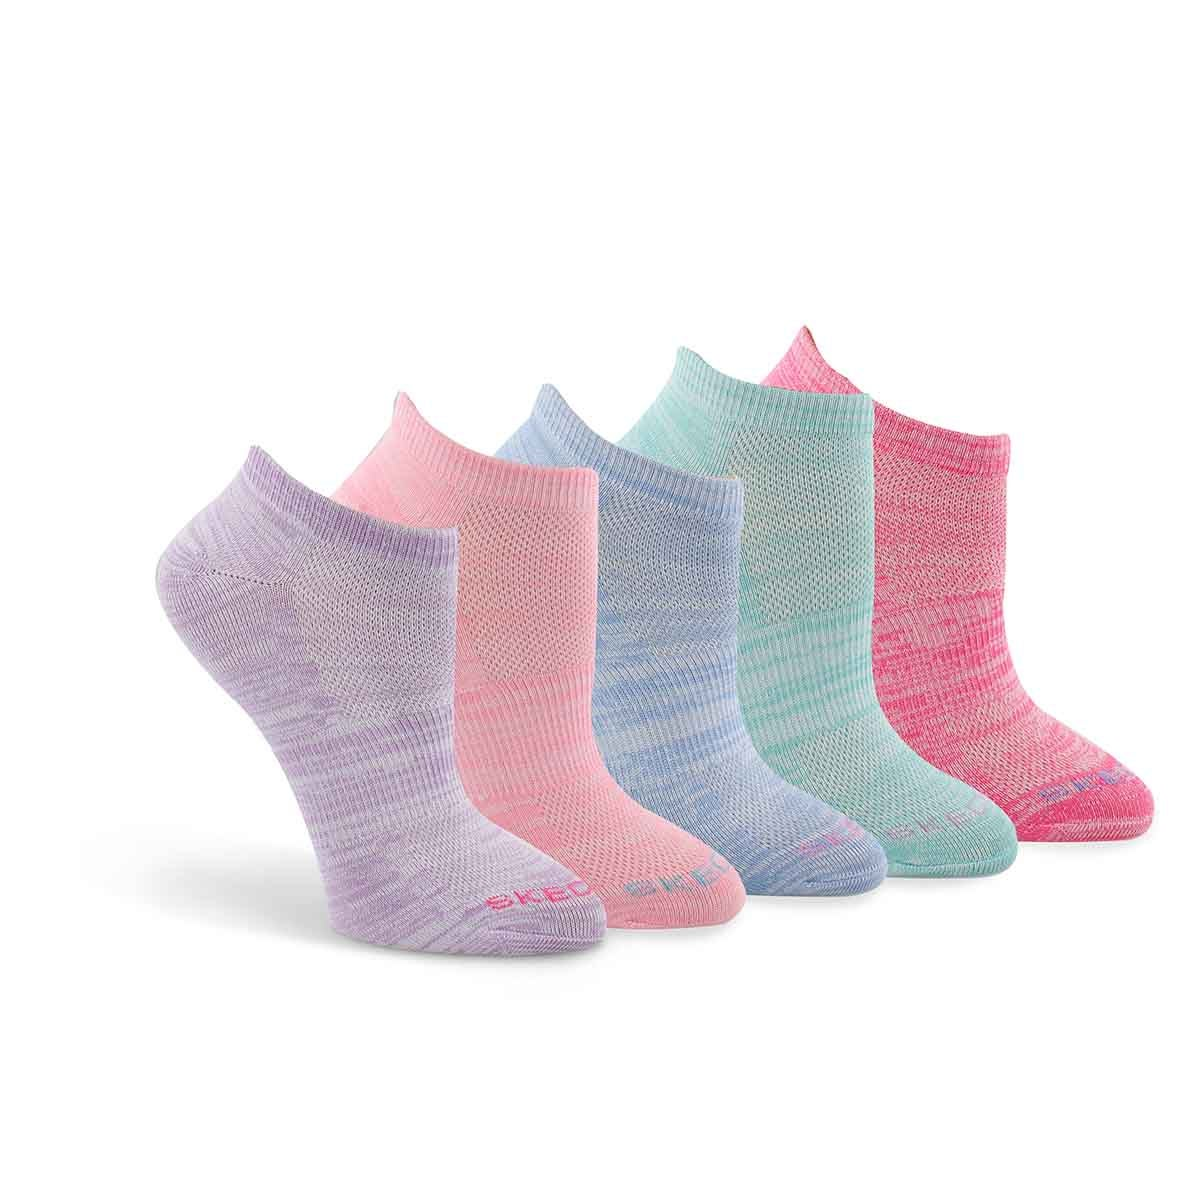 Lds LowCut NoTerry multi sock 5pk